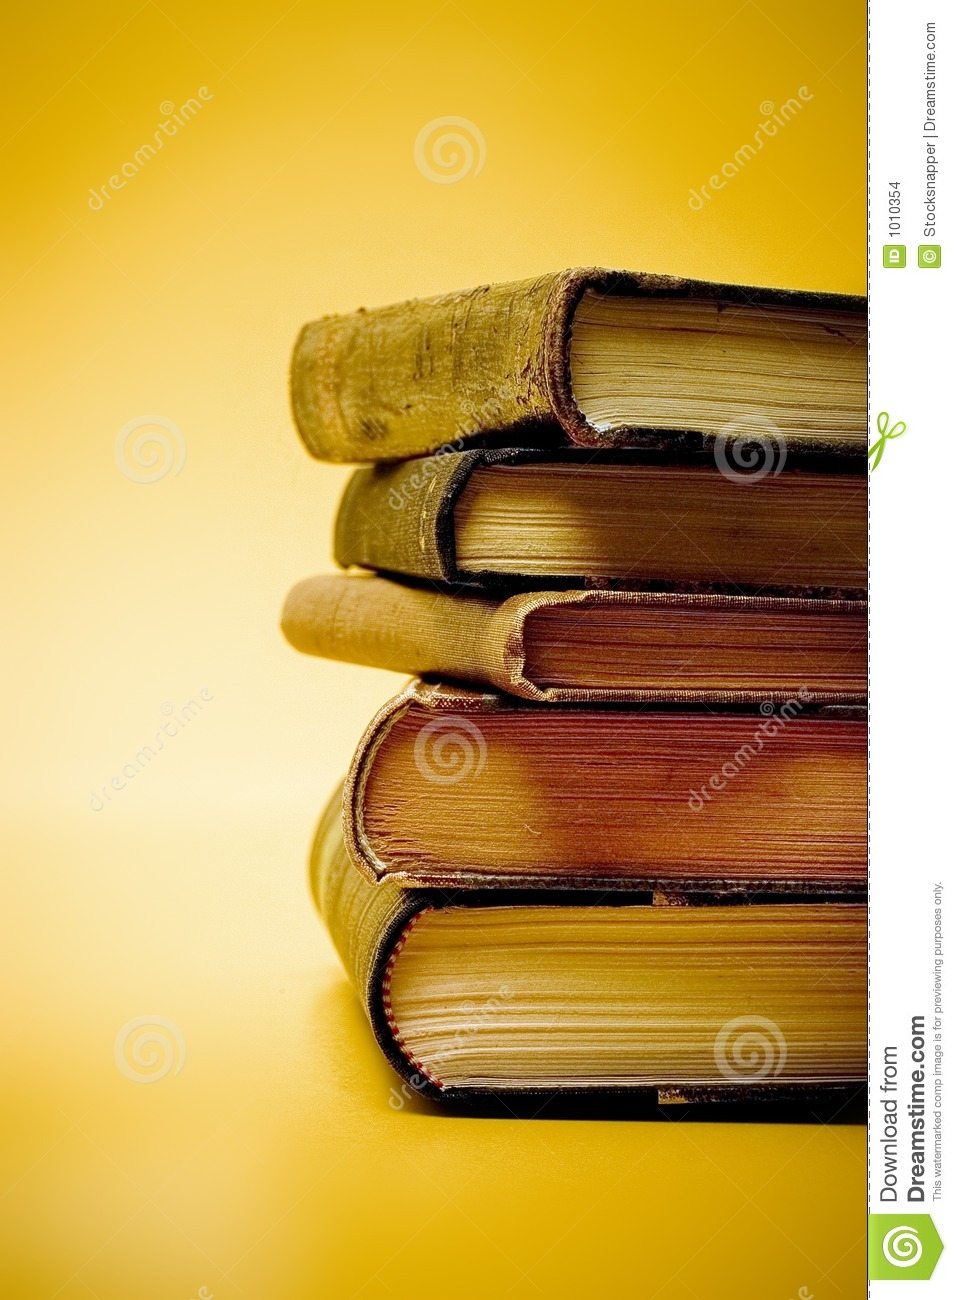 Old Books Stacked Stock Images - Image: 1010354